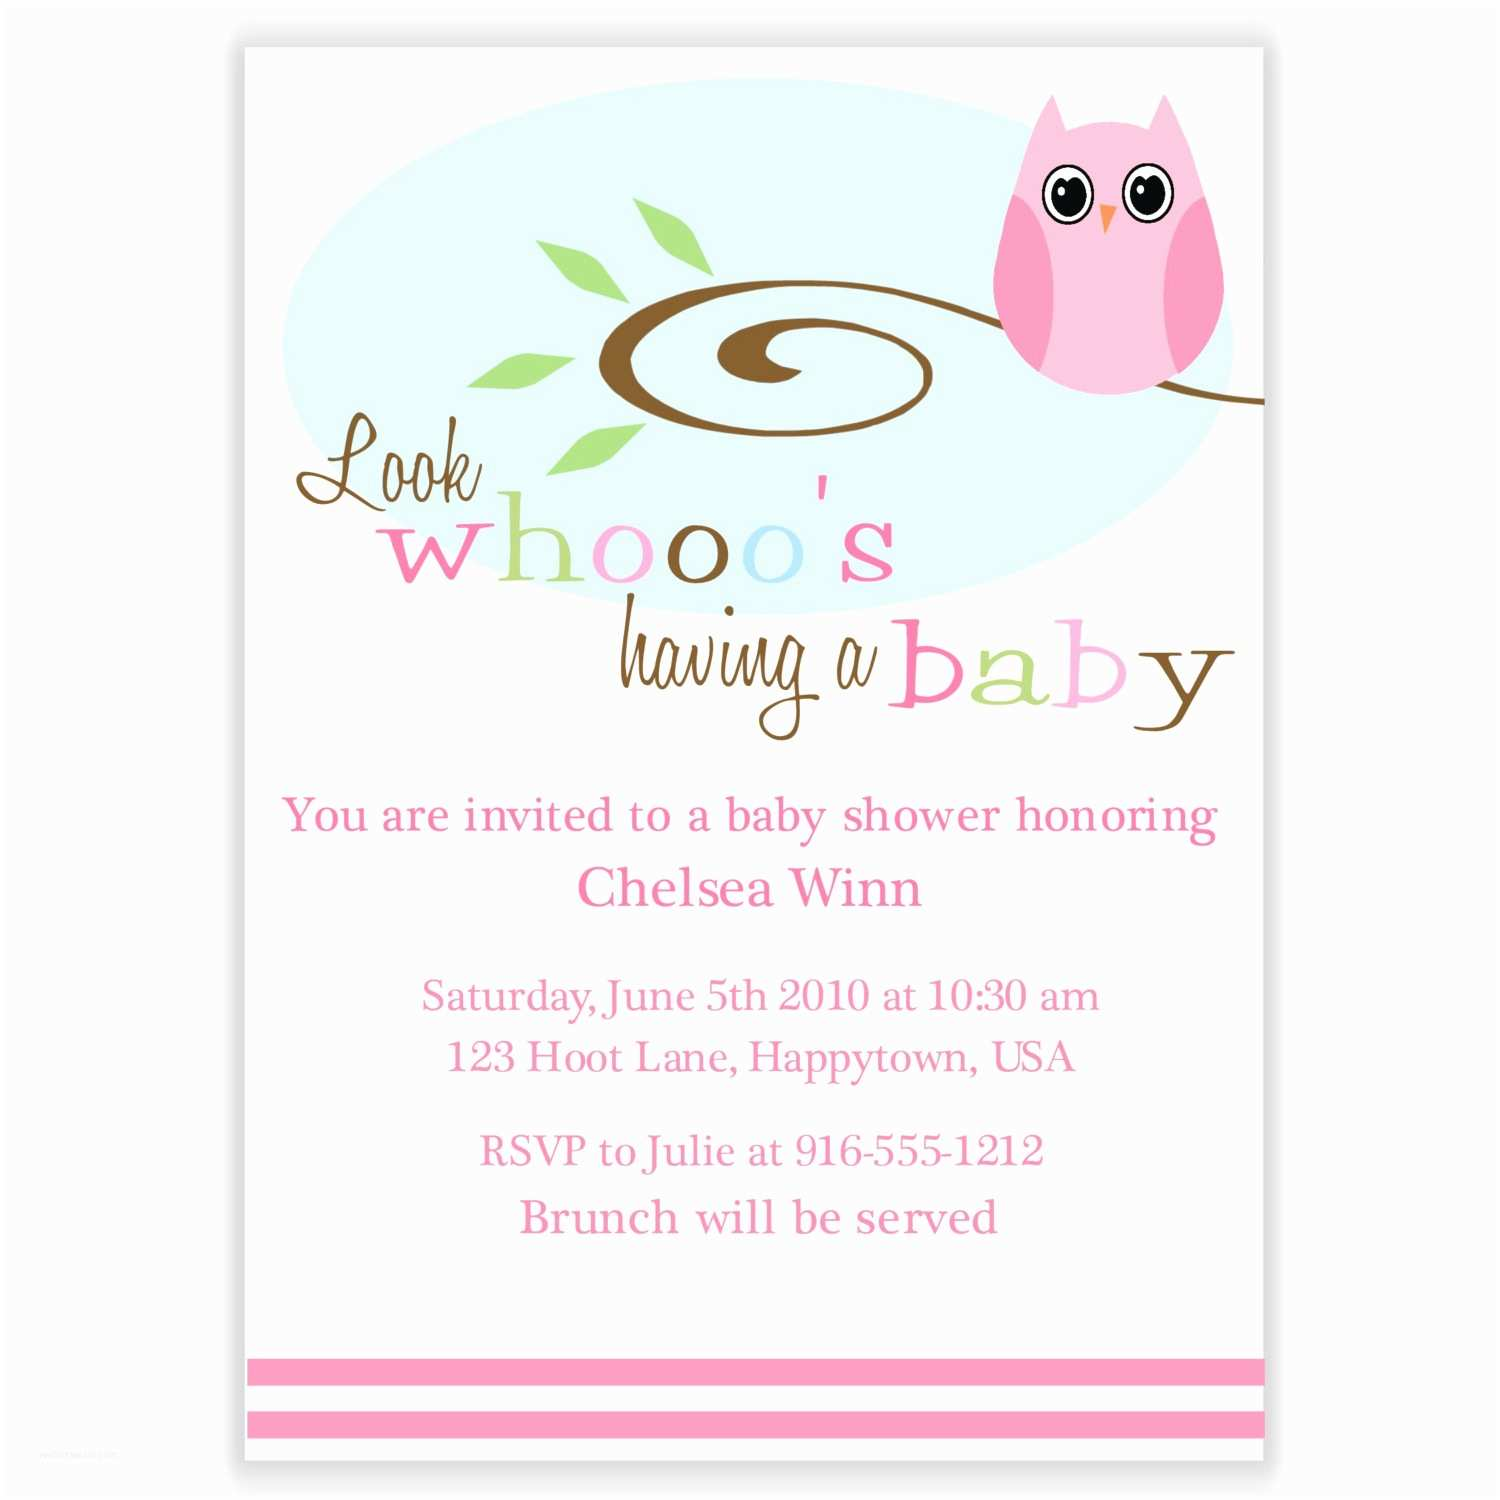 Create Baby Shower Invitations How to Make Shutterfly Baby Shower Invitations Templates